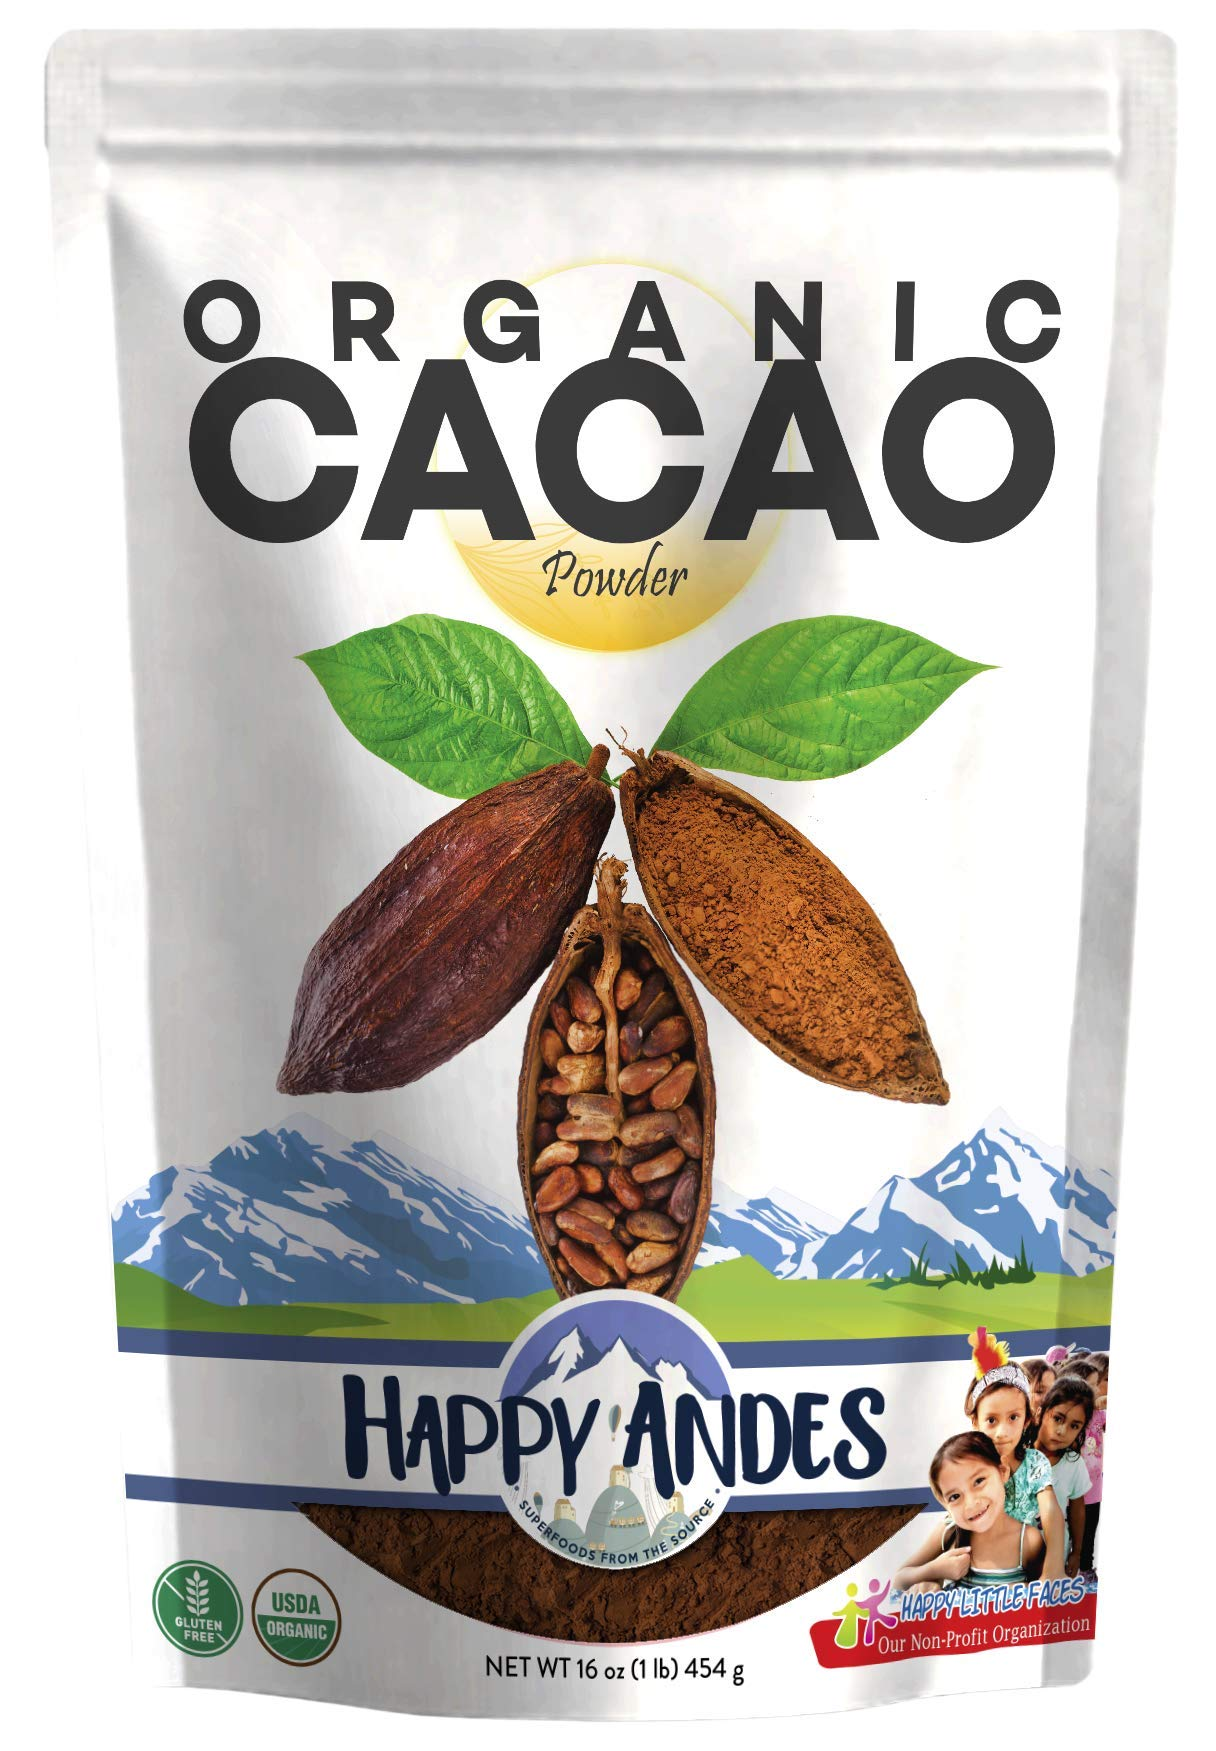 Happy Andes Organic Cacao Powder 1 lb - All-Natural, Single Source Peruvian Beans - For Hot Chocolate, Baking & Smoothies - Rich in Antioxidants, Nutrients, Flavanols - Non-Gluten & USDA-Certified